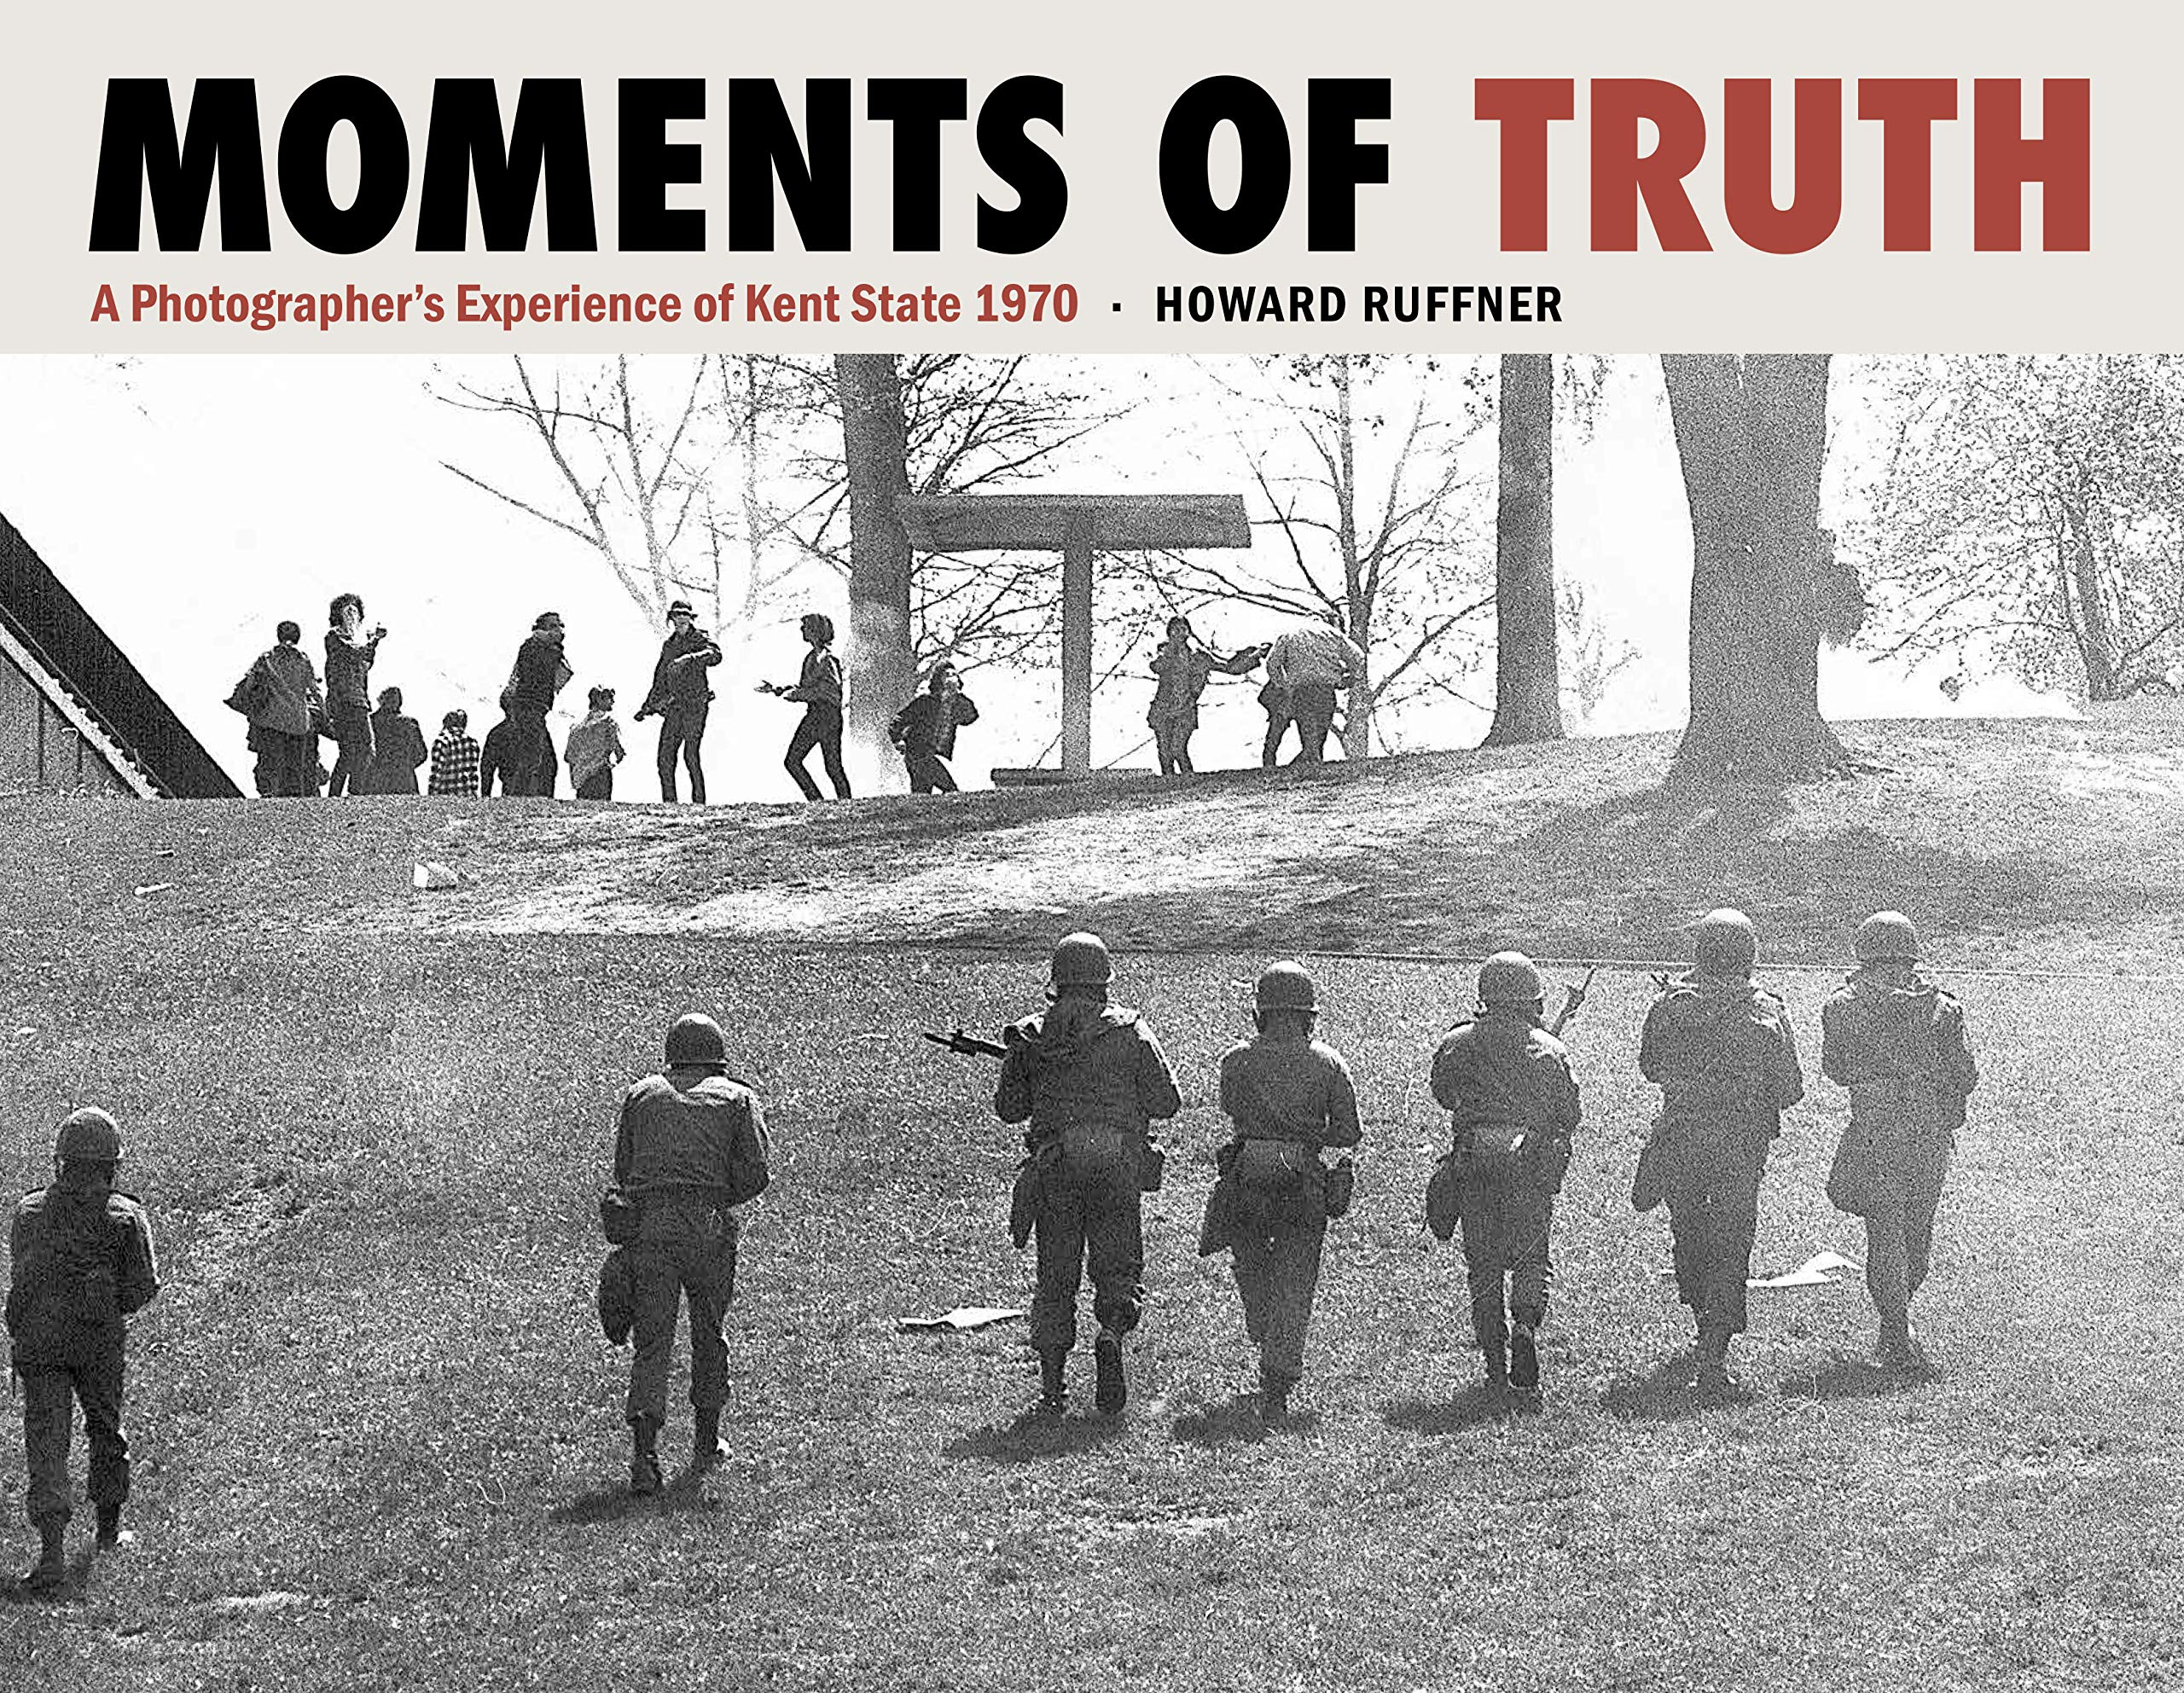 Moments of Truth: A Photographer's Experience of Kent State 1970 by The Kent State University Press